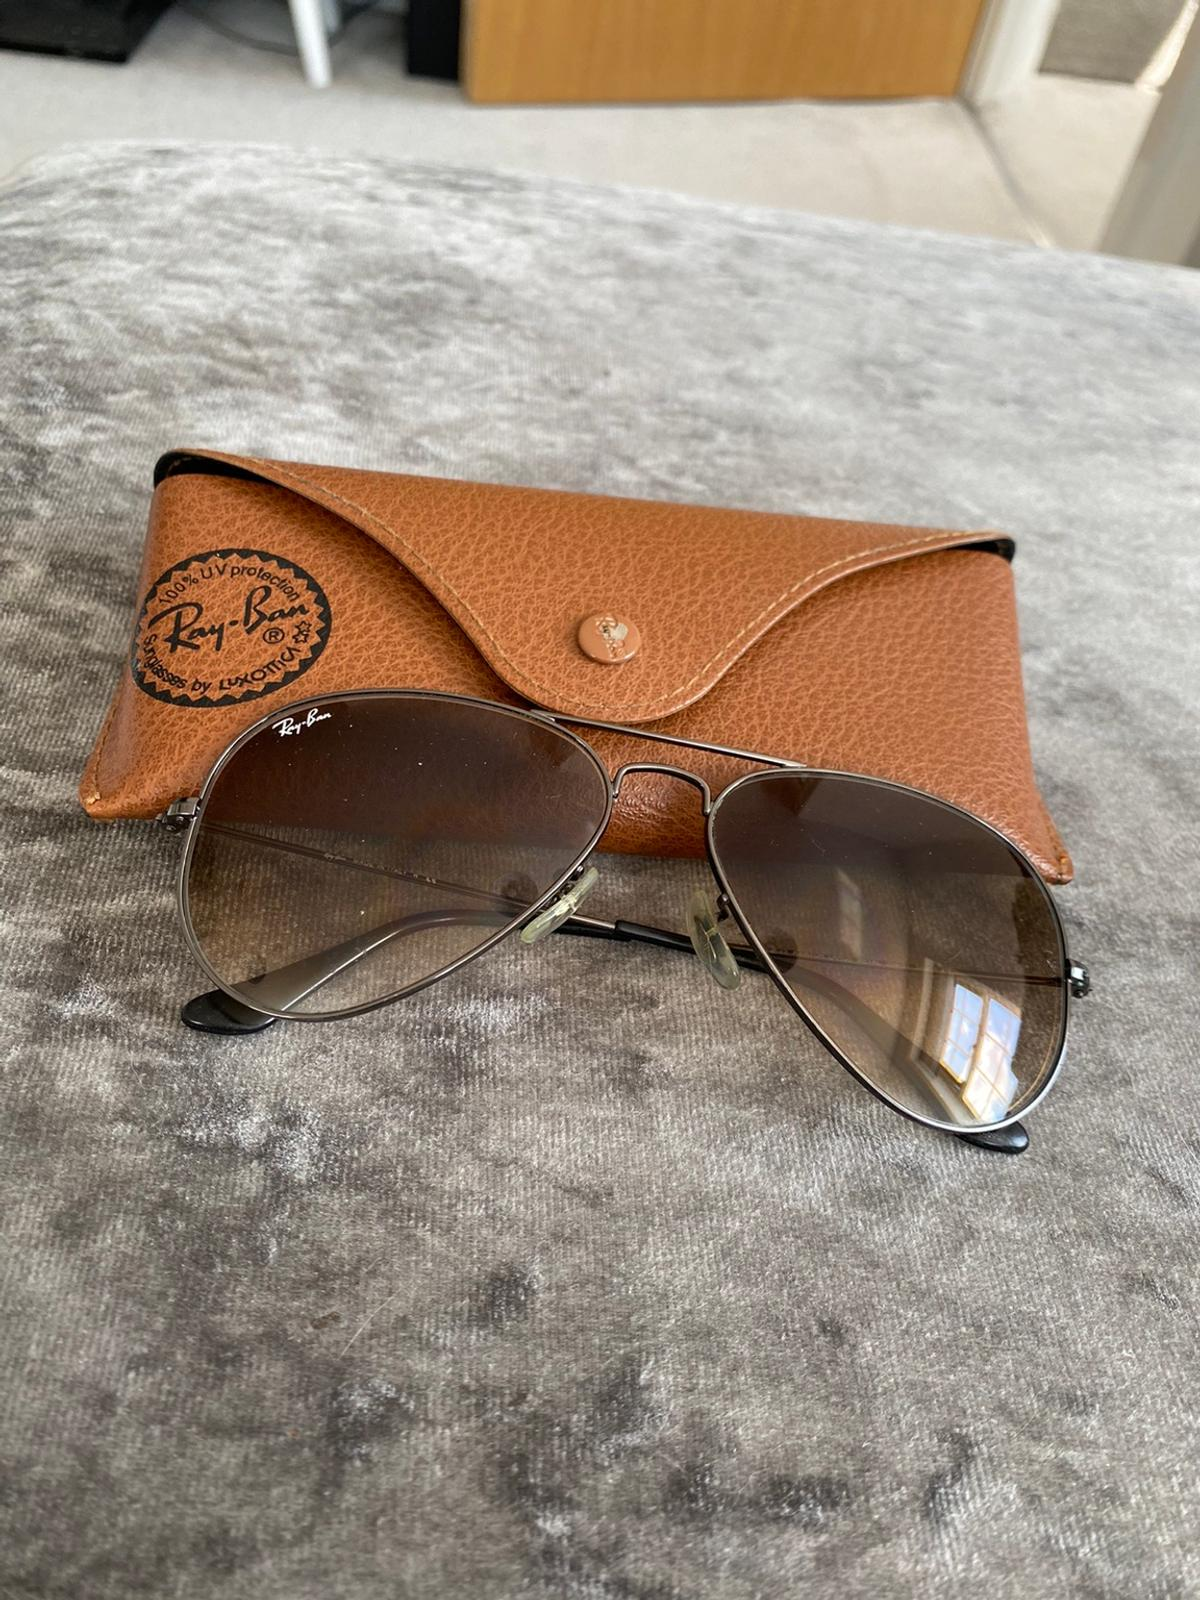 Genuine RayBan Sunglasses, they have a brown lens tint and come with original leather case.  'RB' etched into the left lens to show authenticity  Inspections welcome.  I can deliver locally for a small charge